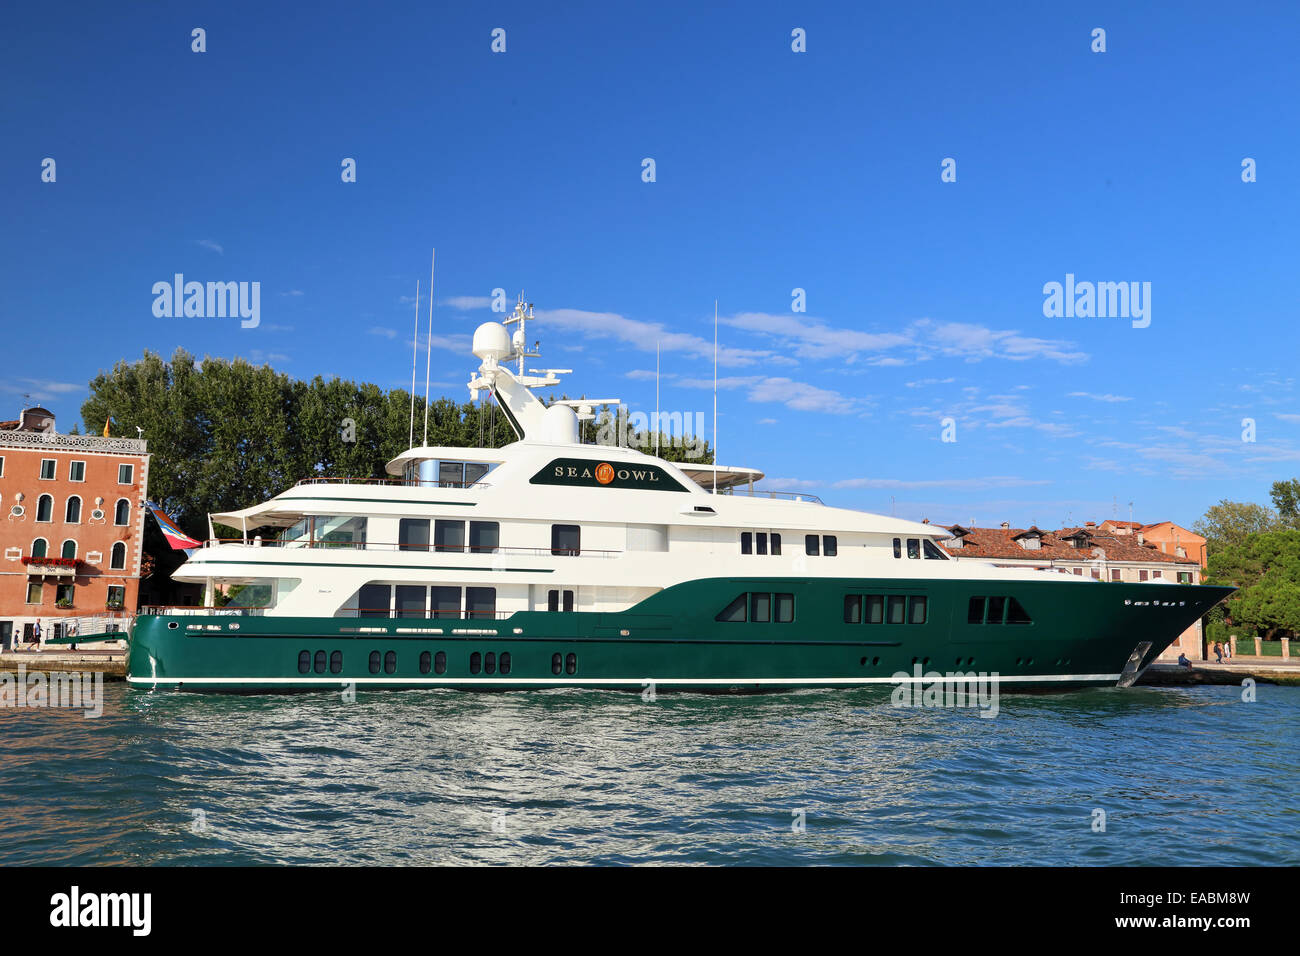 Superyacht Sea Owl, IMO 1011604, owned by Robert Mercer, co